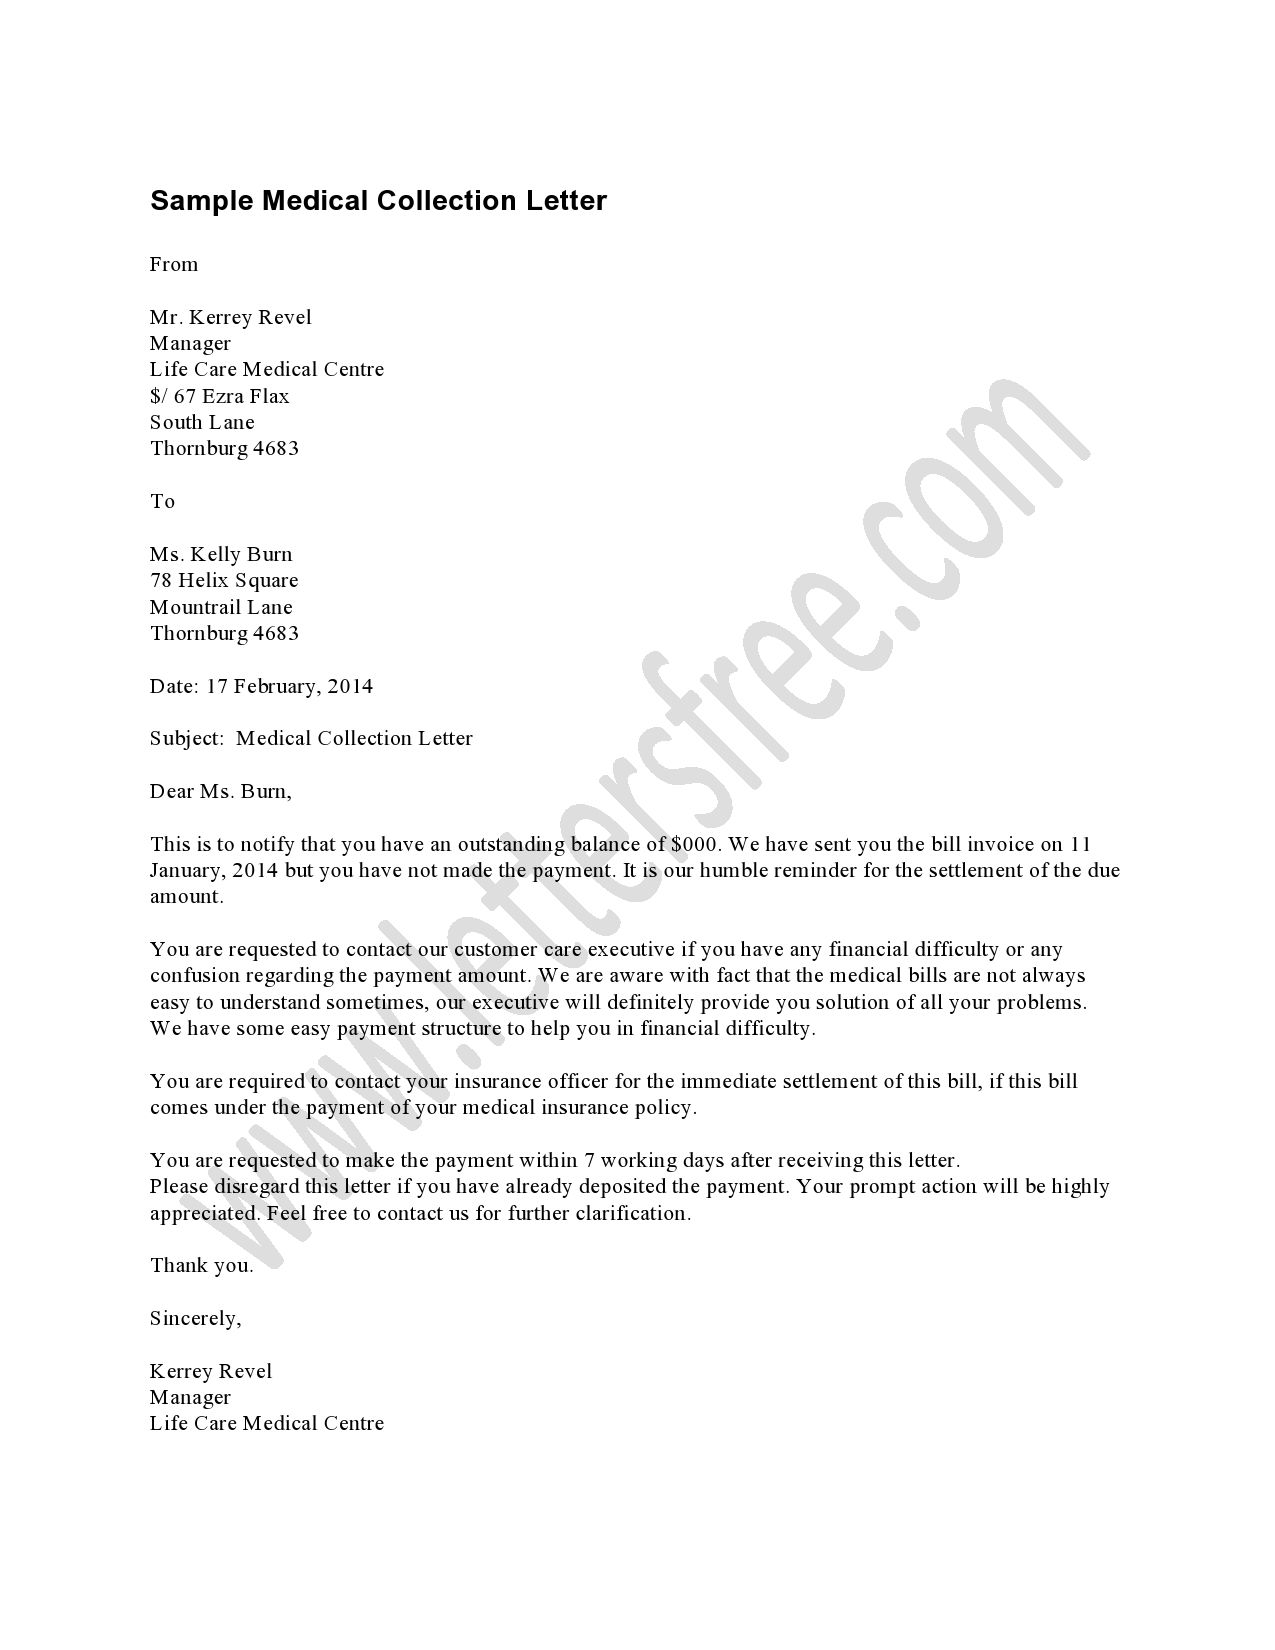 Medical collection letter example should be used as a first reminder medical collection letter example should be used as a first reminder notice to gently remind your patients to pay or get in touch with your office to work spiritdancerdesigns Choice Image